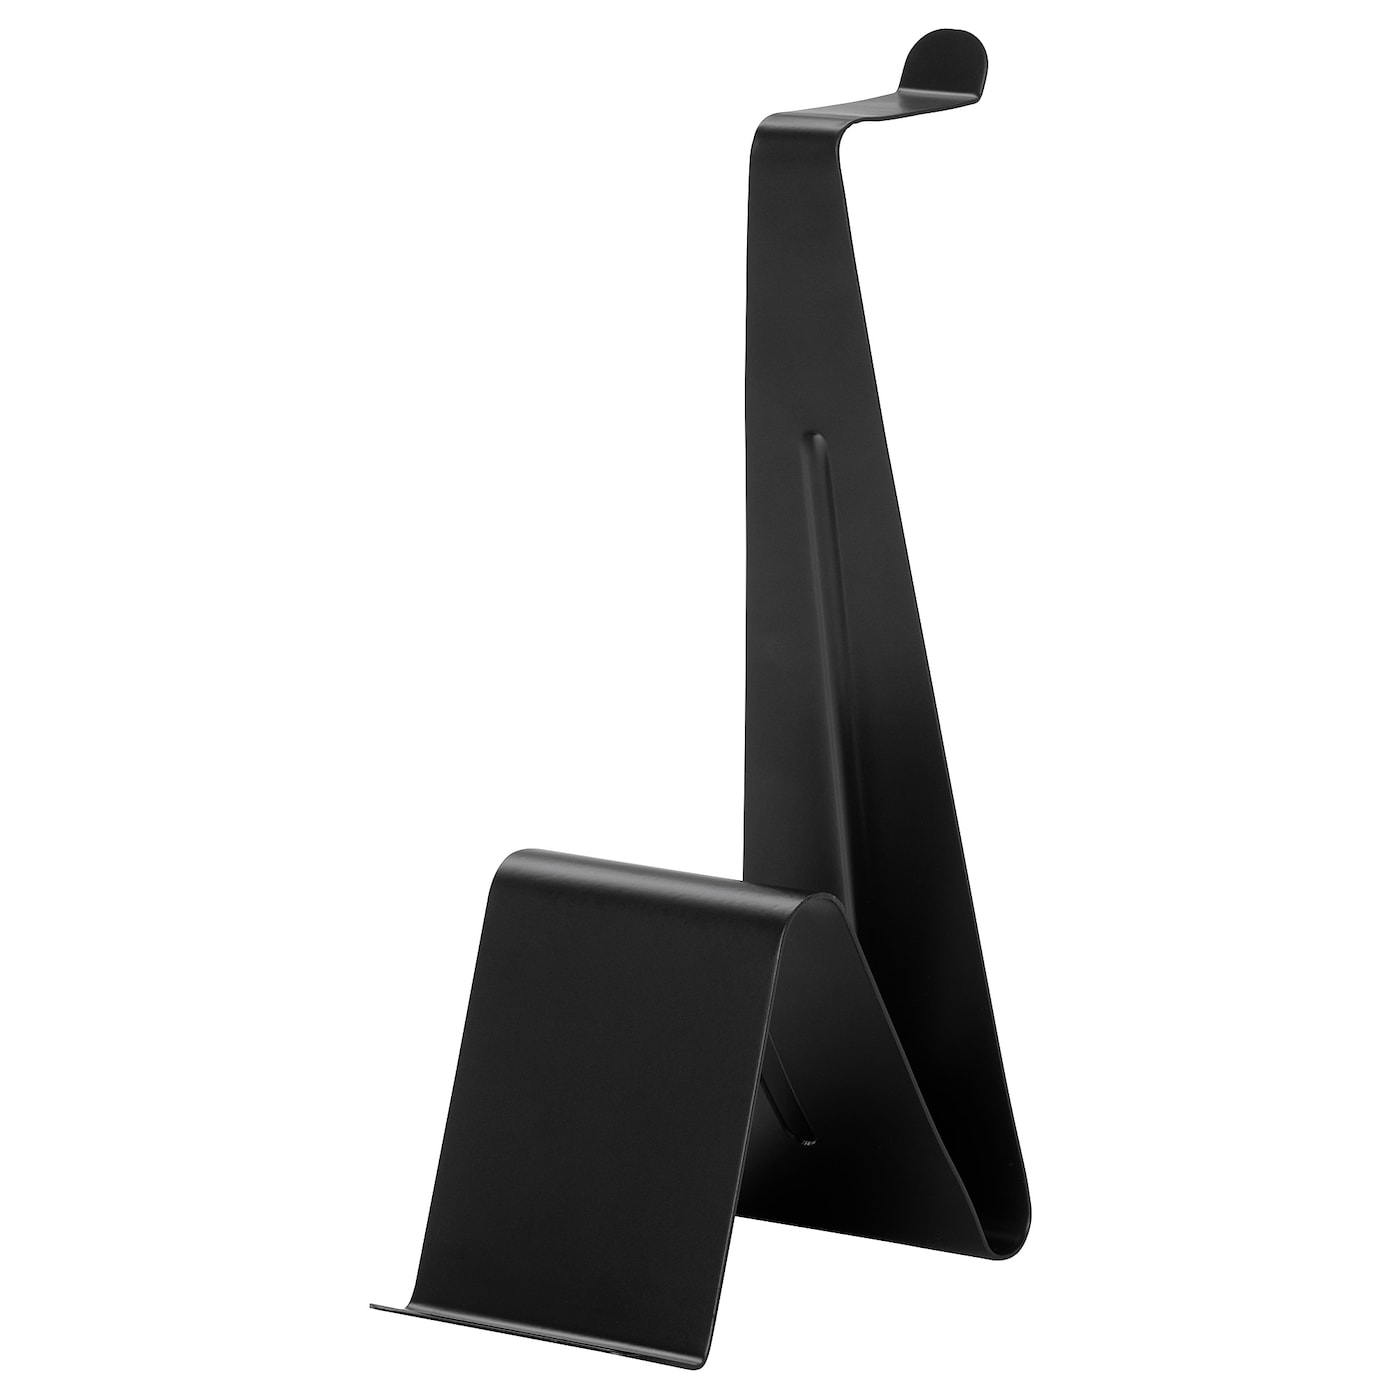 Ikea Tablet Stand 2021